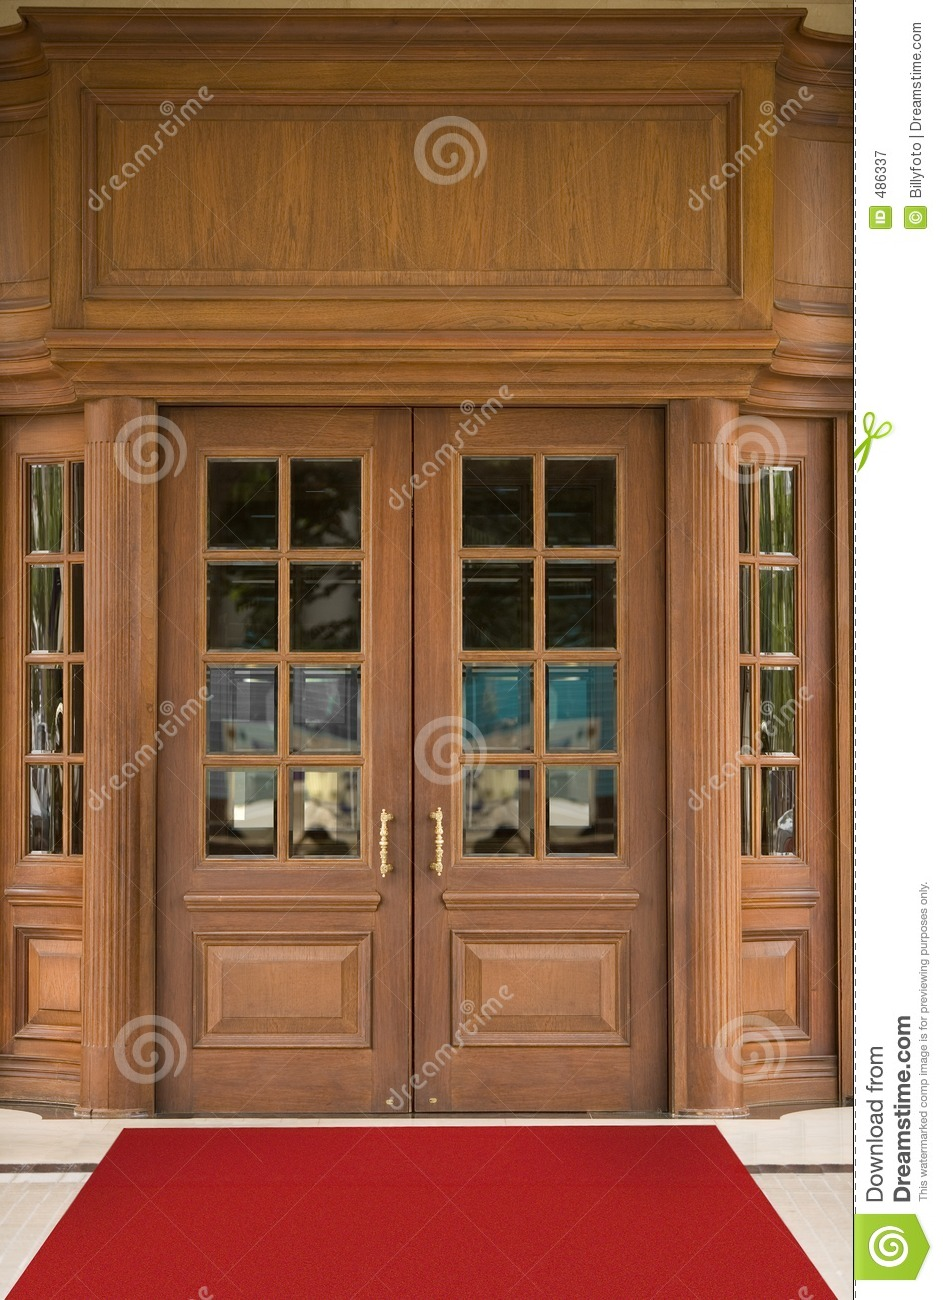 Hotel Door Royalty Free Stock Photography Image 486337